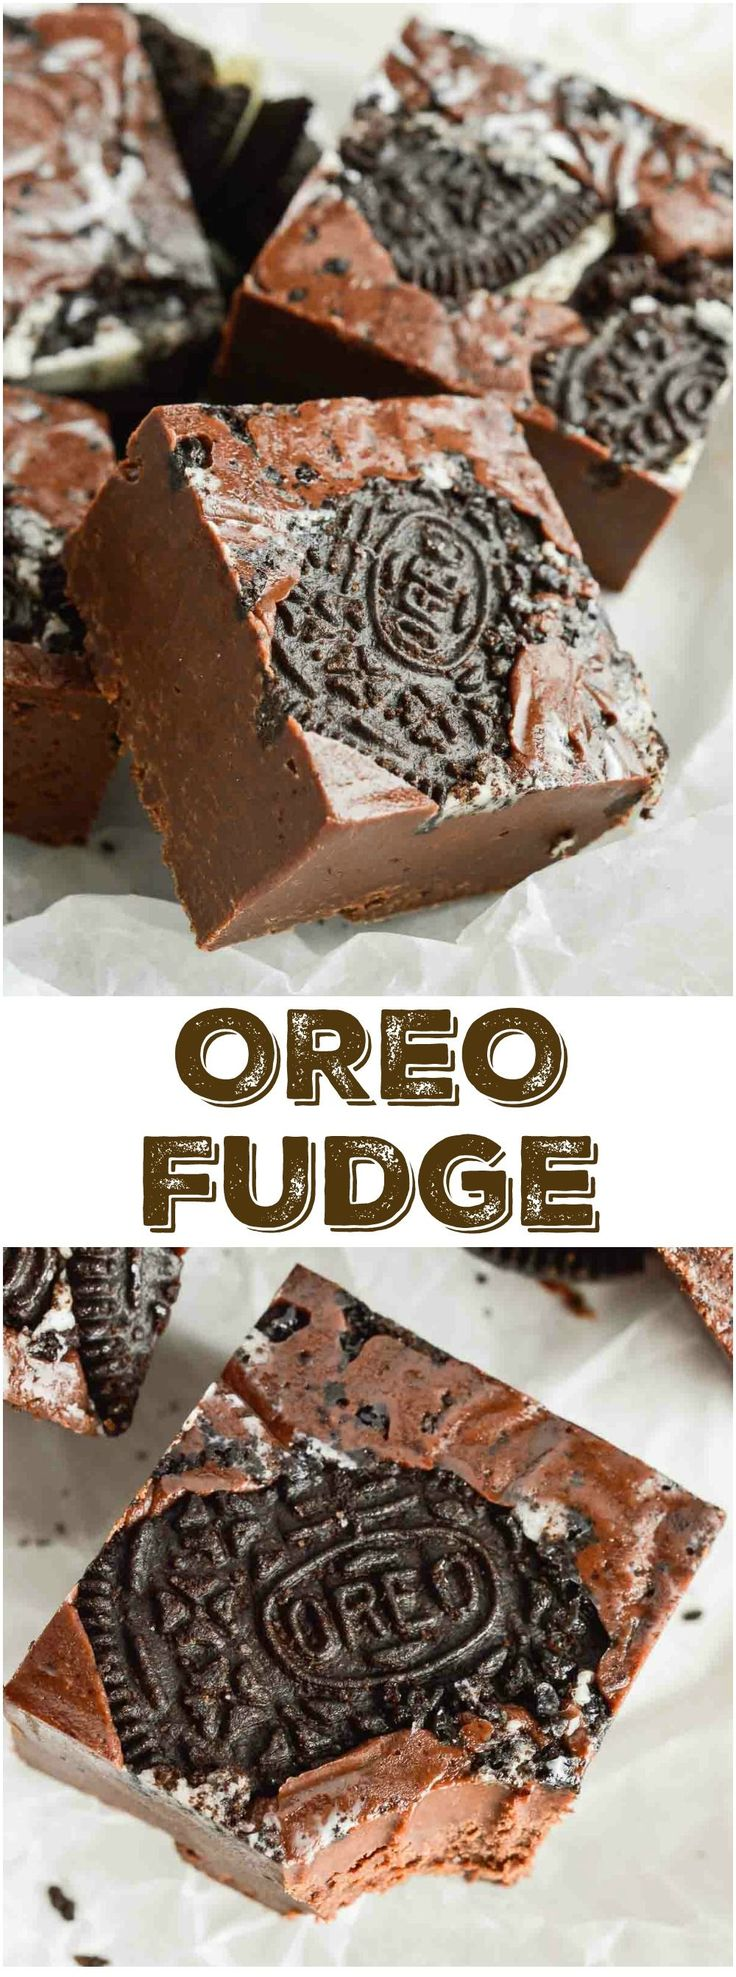 Easy Oreo Microwave Fudge takes 10 minutes to prep and tastes Unbelievable! Perfect for those chocolate cravings or as a homemade holiday gift idea. #fudge wonkywonderful.com